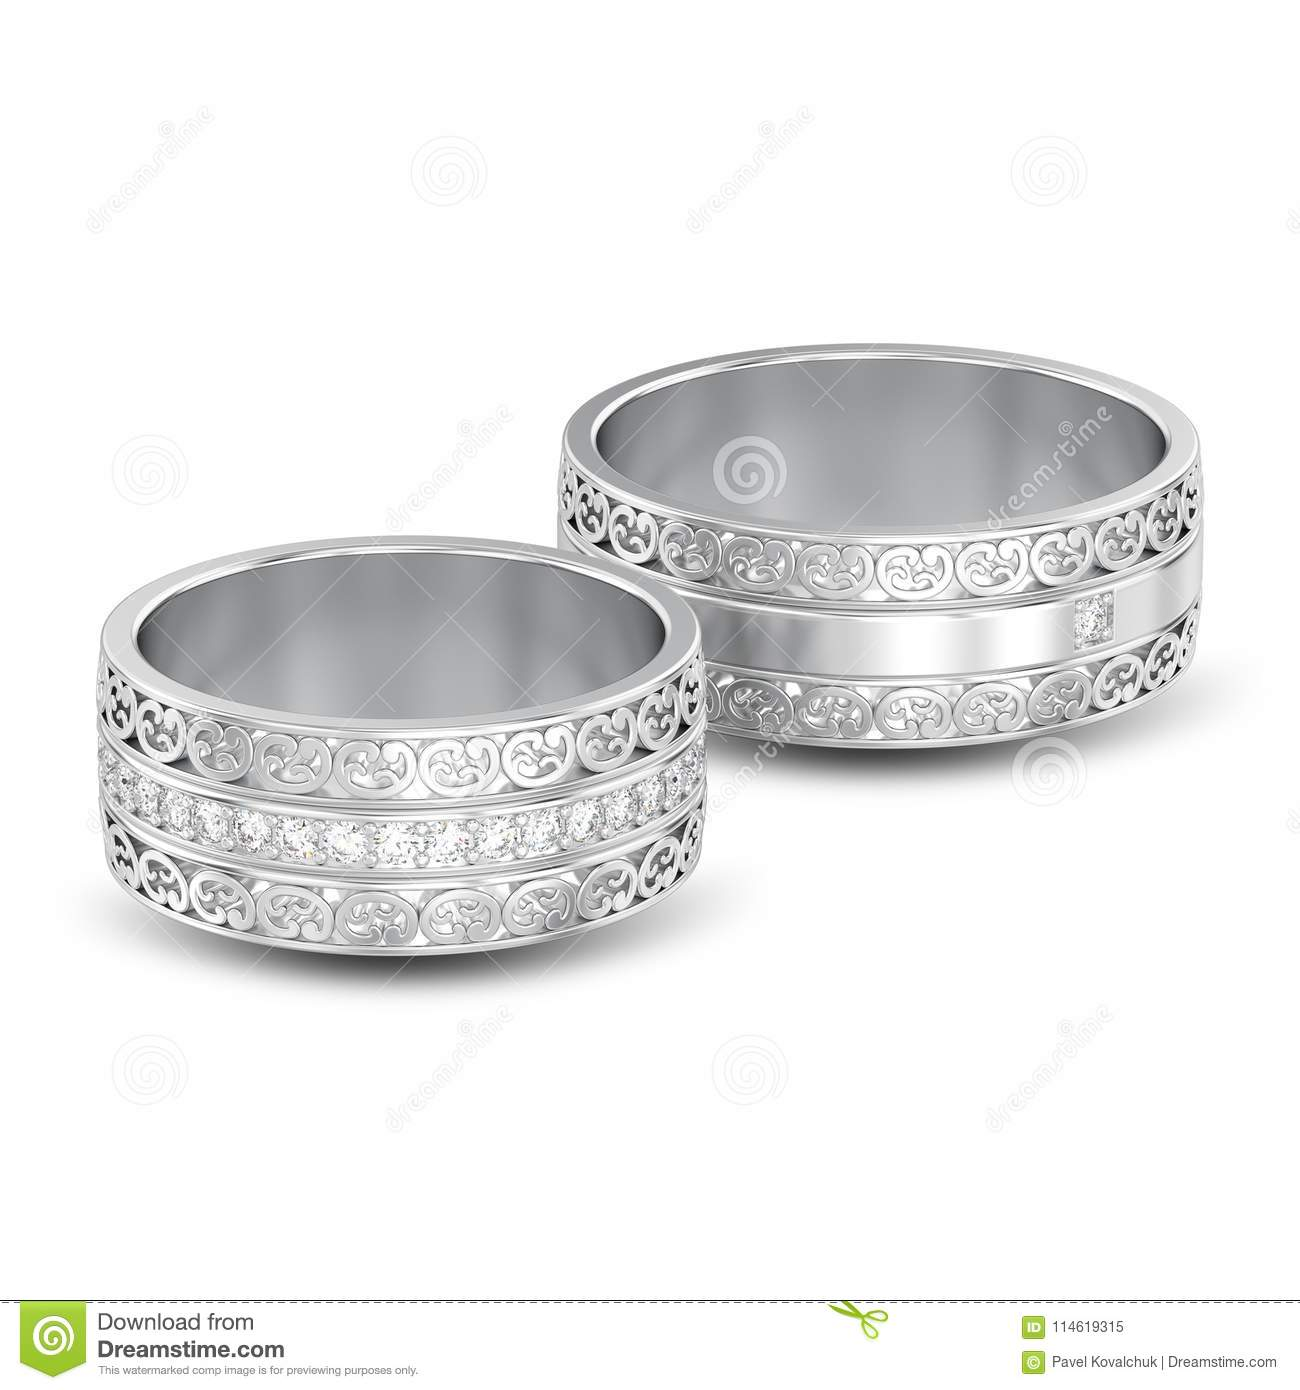 3d Illustration Isolated Two Silver Decorative Wedding Bands Car